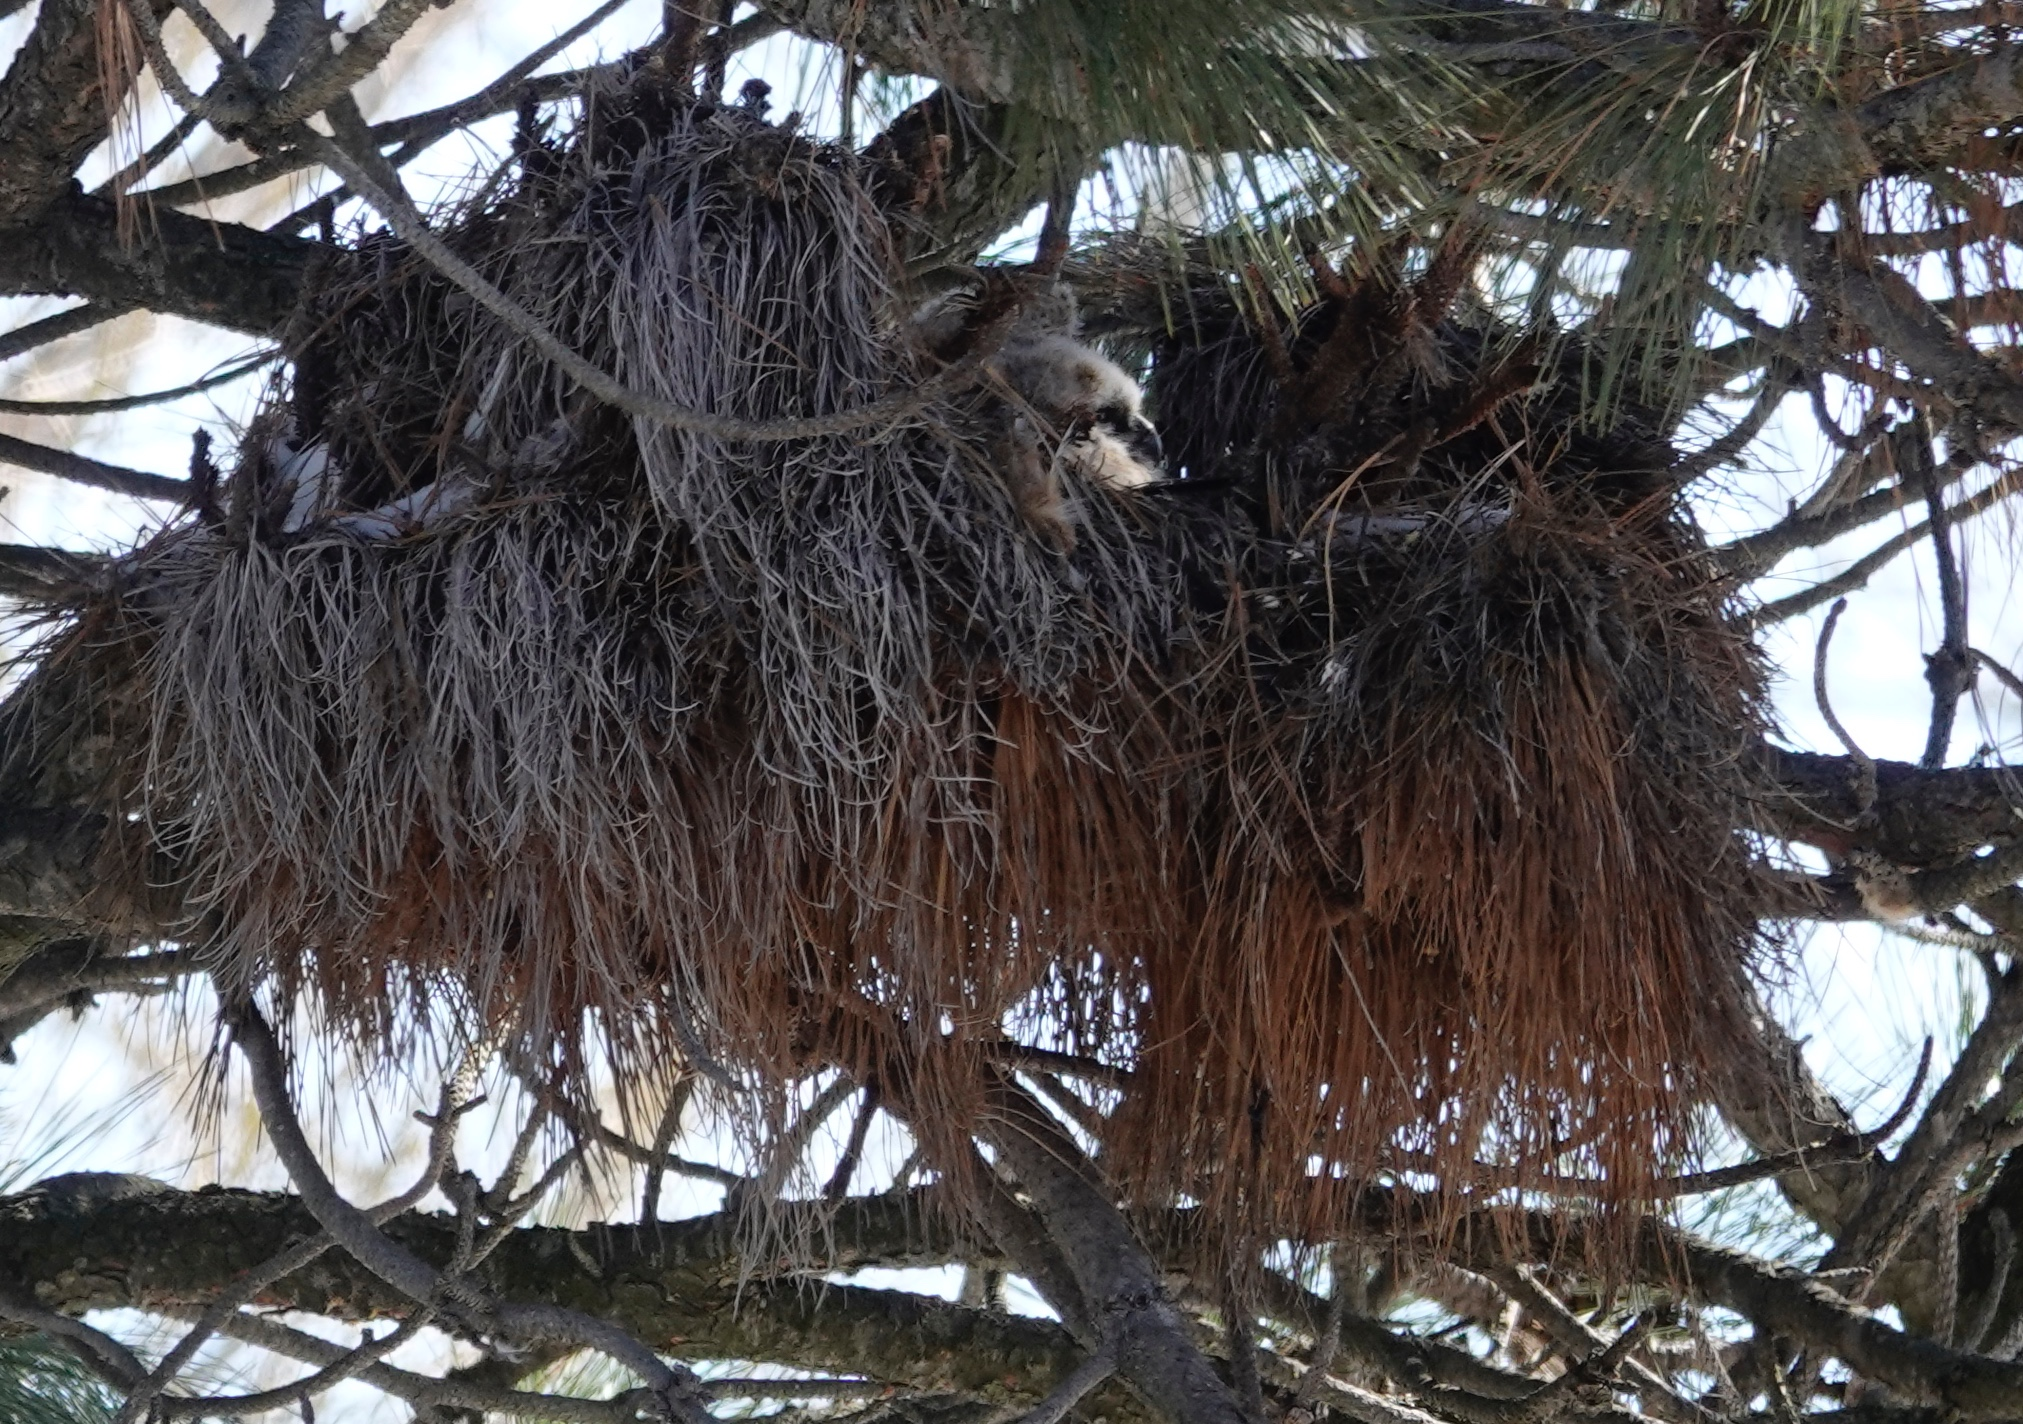 A Great Horned Owl nest in April.